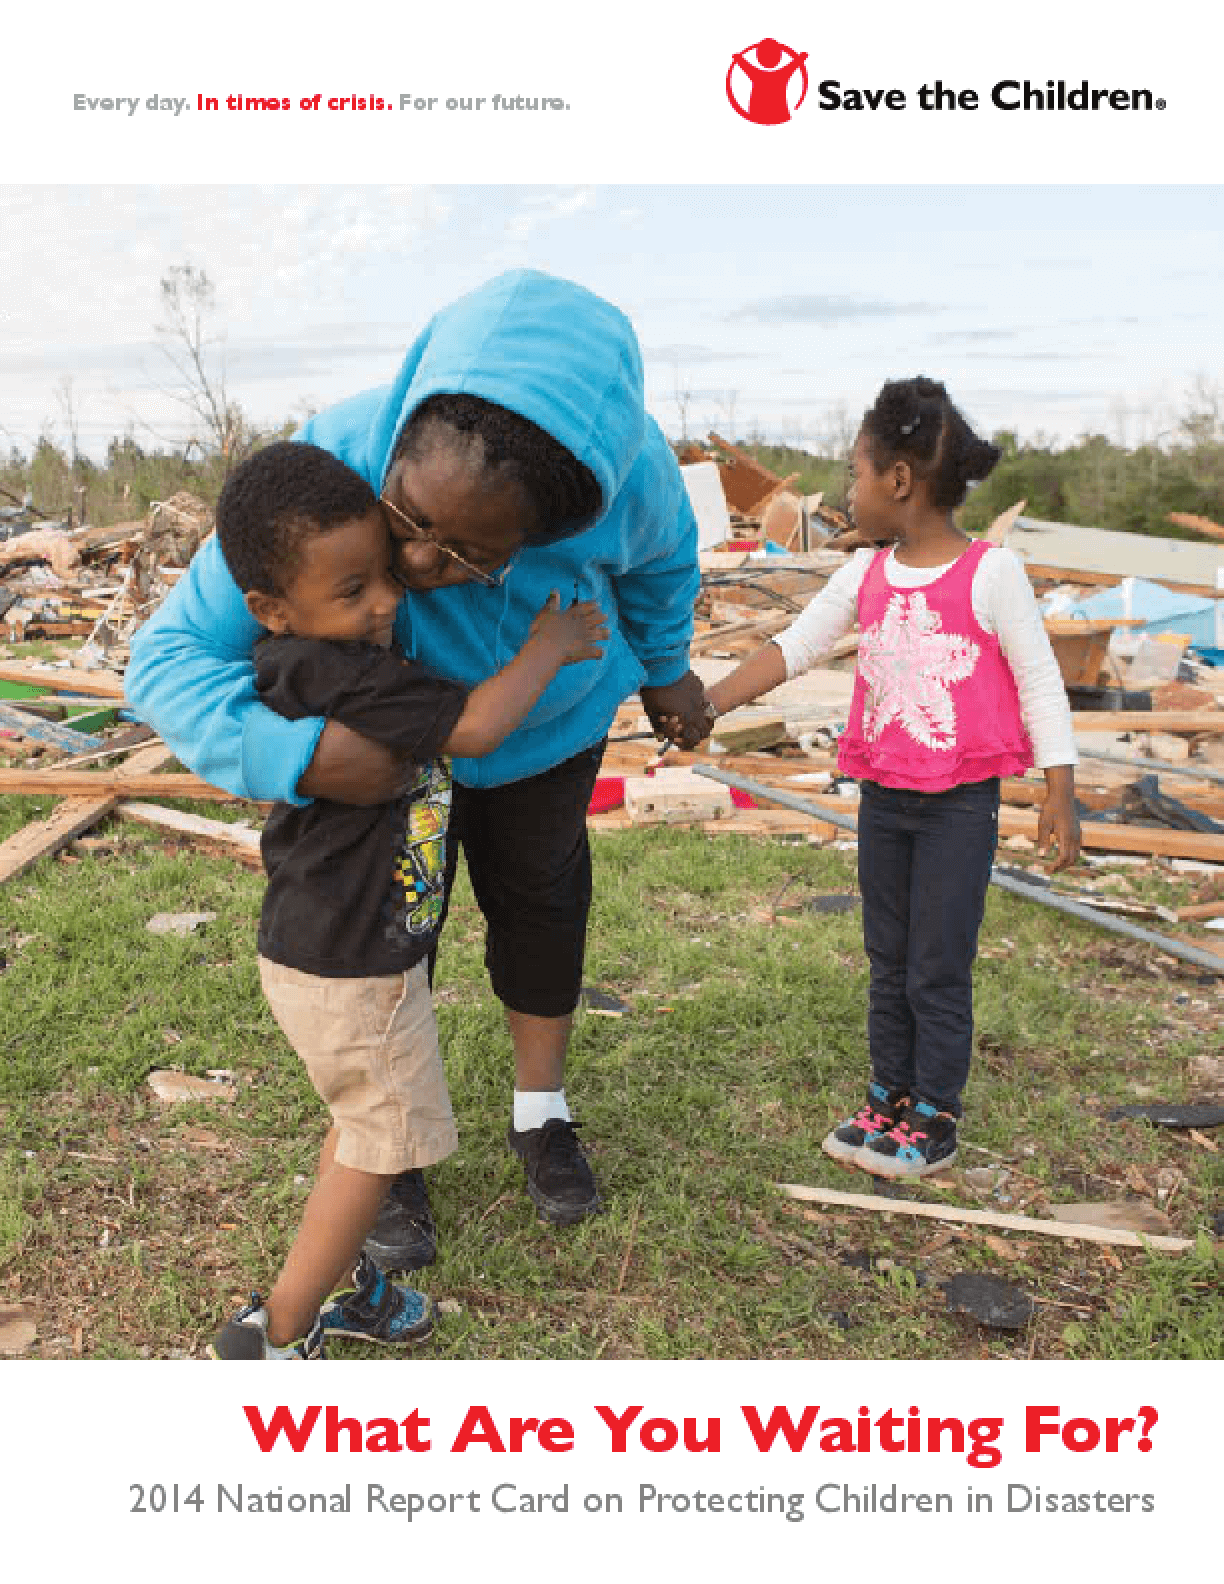 What Are You Waiting For? 2014 National Report Card On Protecting Children In Disasters